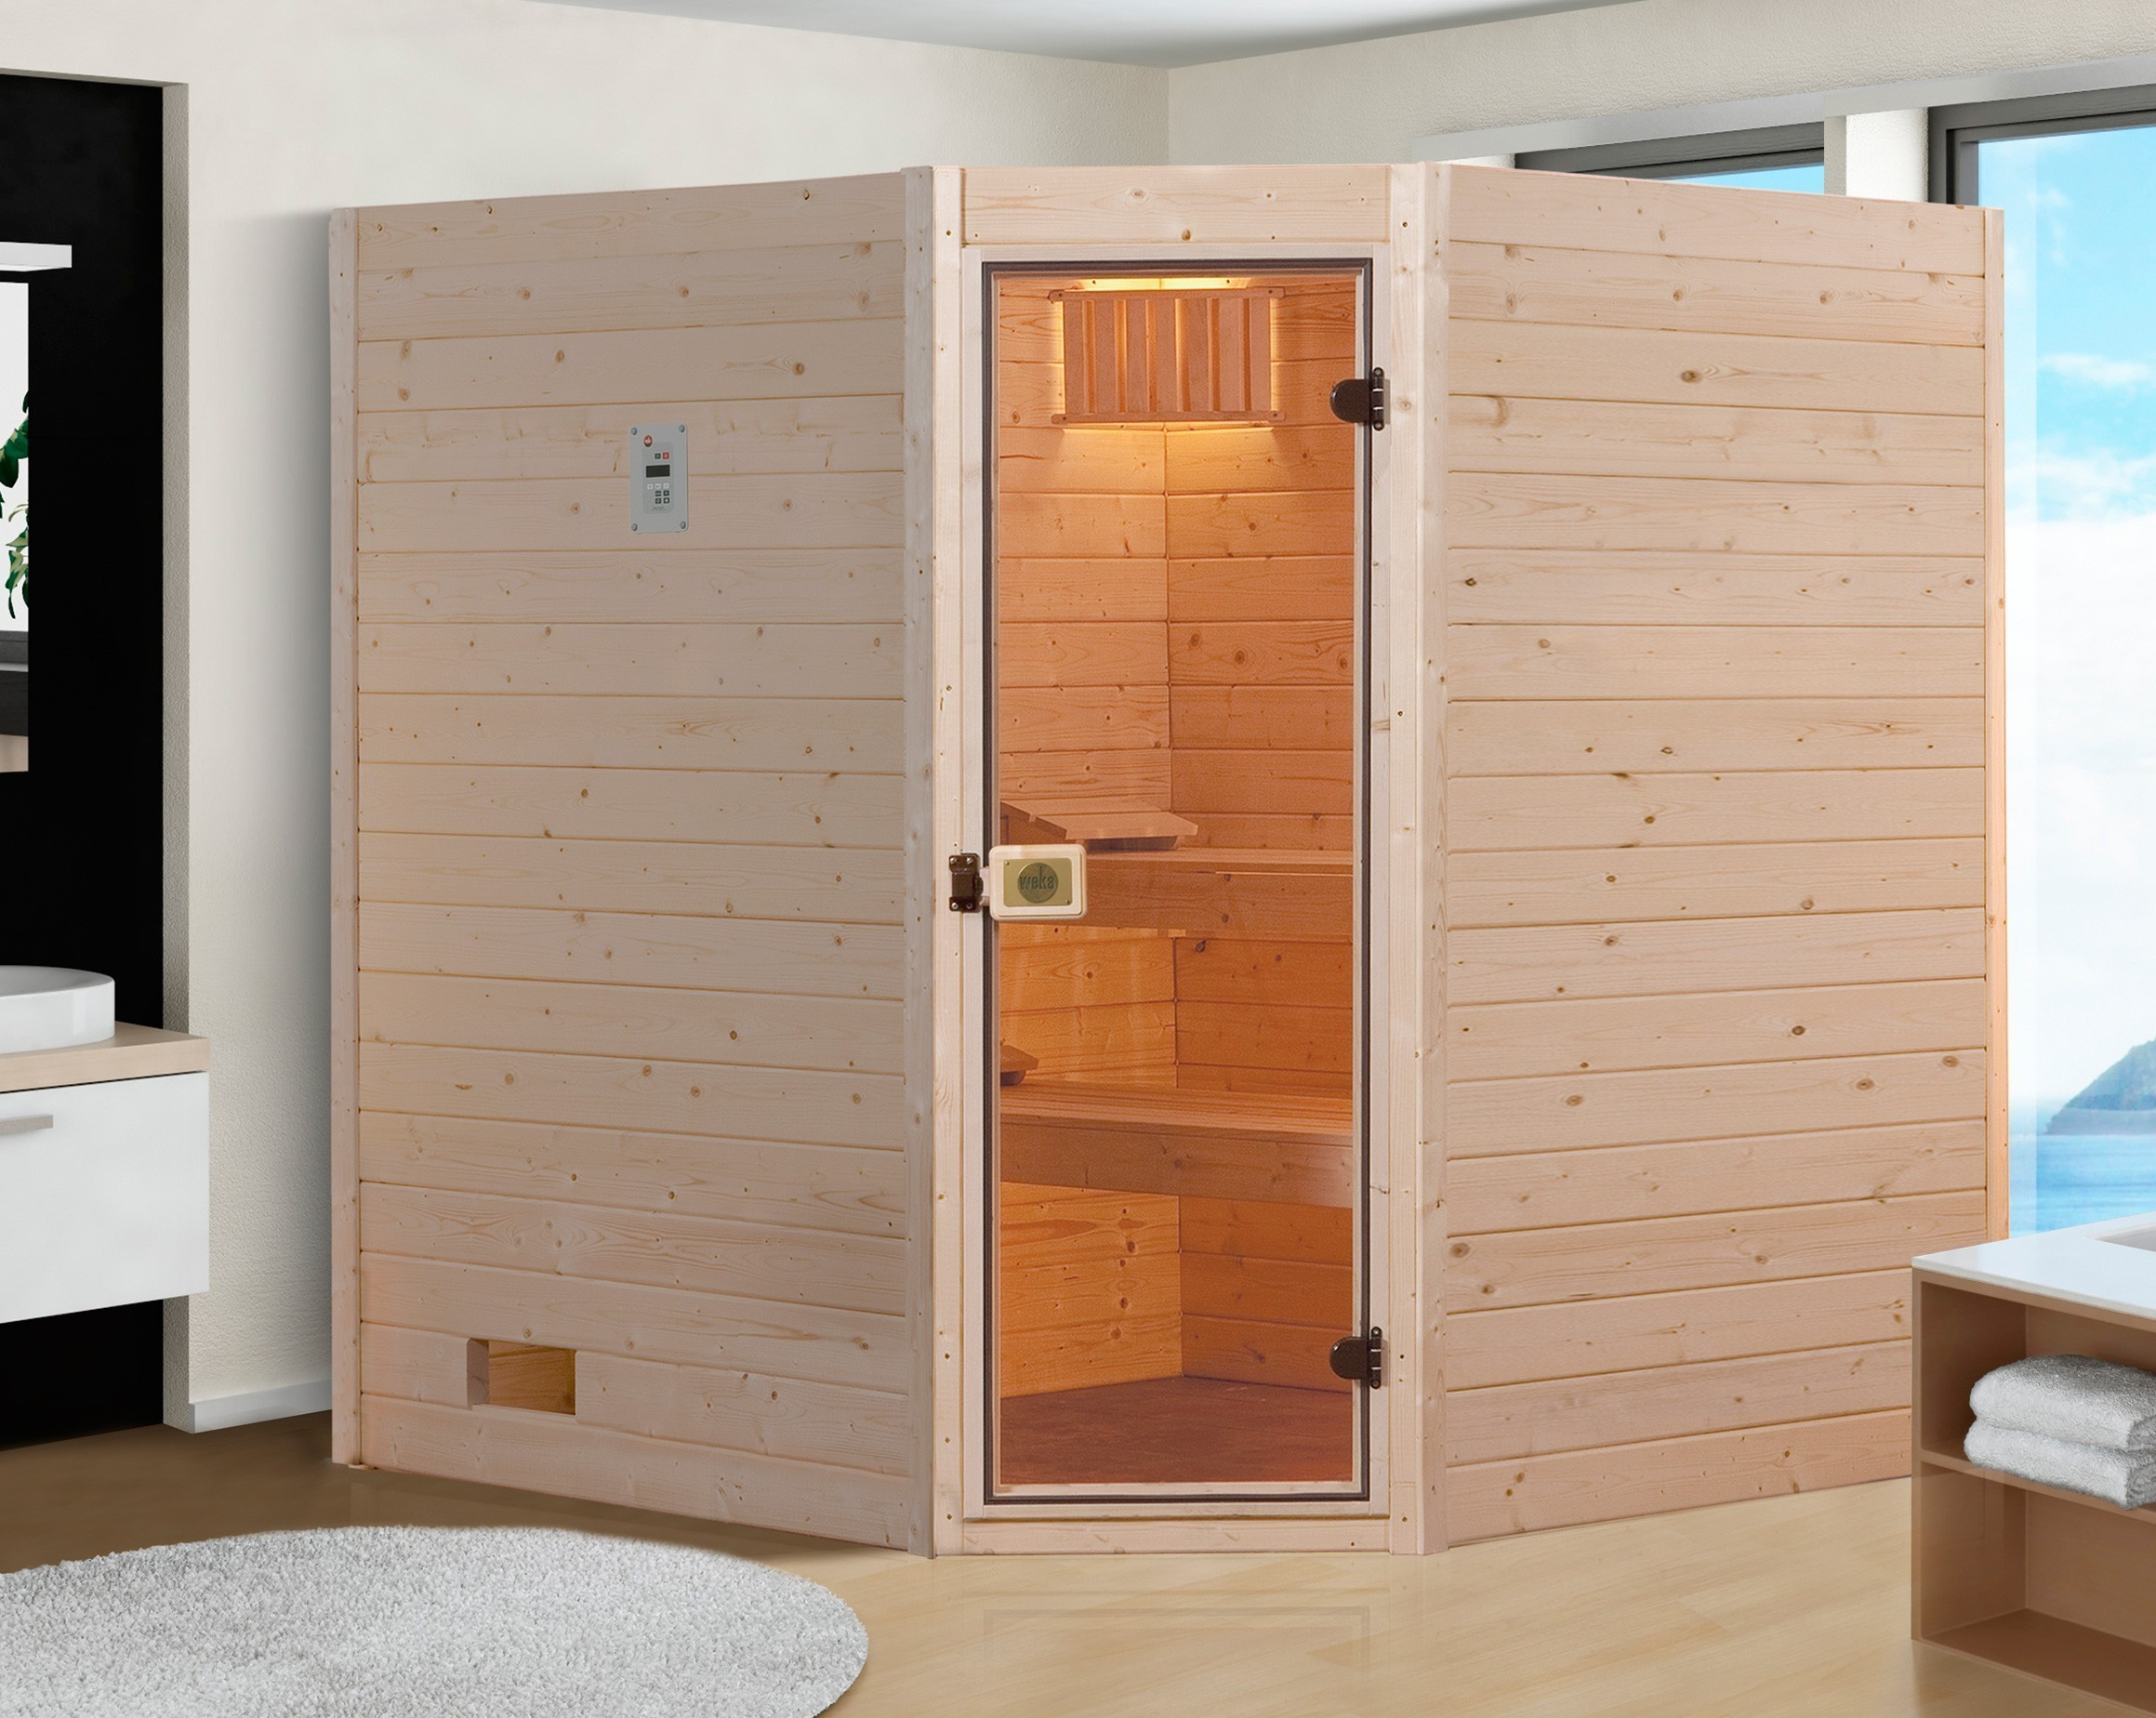 massivholz sauna weka 38 mm 539 gt gr 2 ohne saunaofen. Black Bedroom Furniture Sets. Home Design Ideas